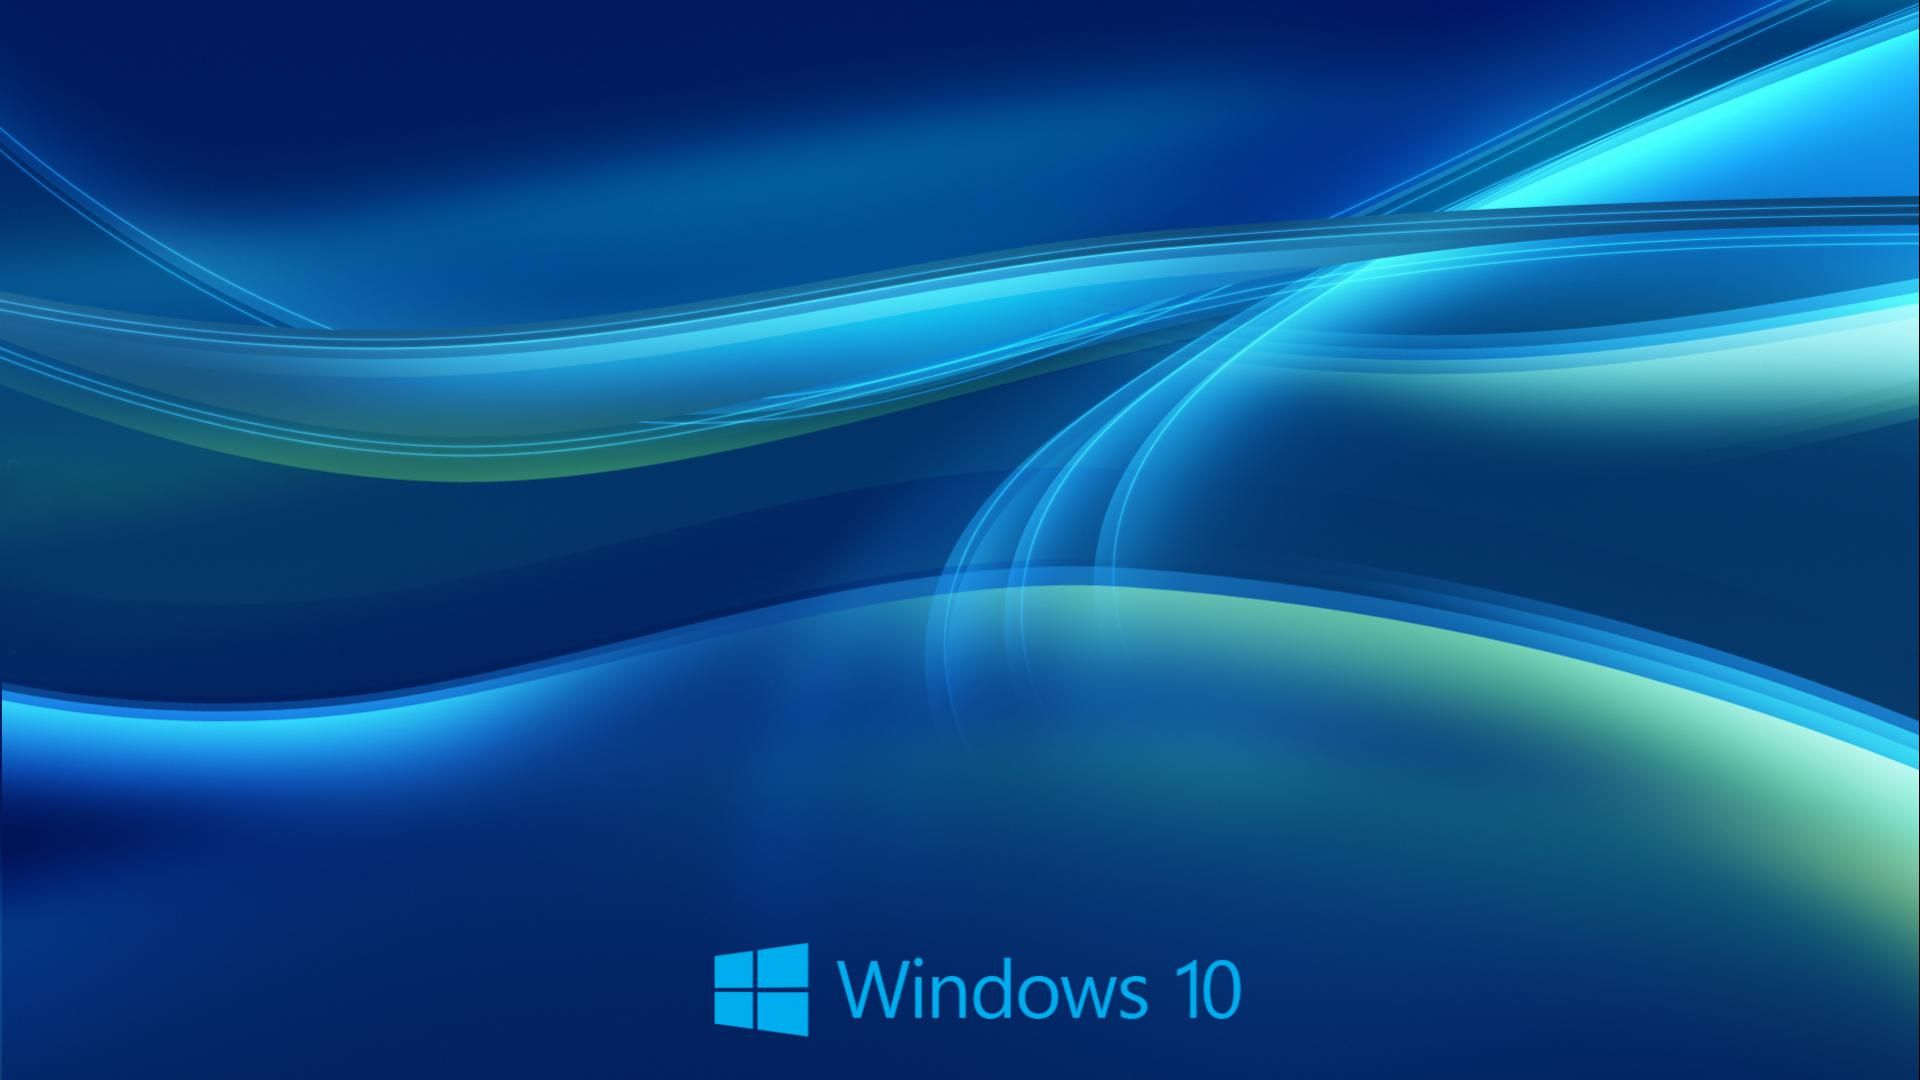 Windows 10 Logo Wallpaper 1920x1080 In 2020 Windows 10 Os Wallpaper Wallpaper Windows 10